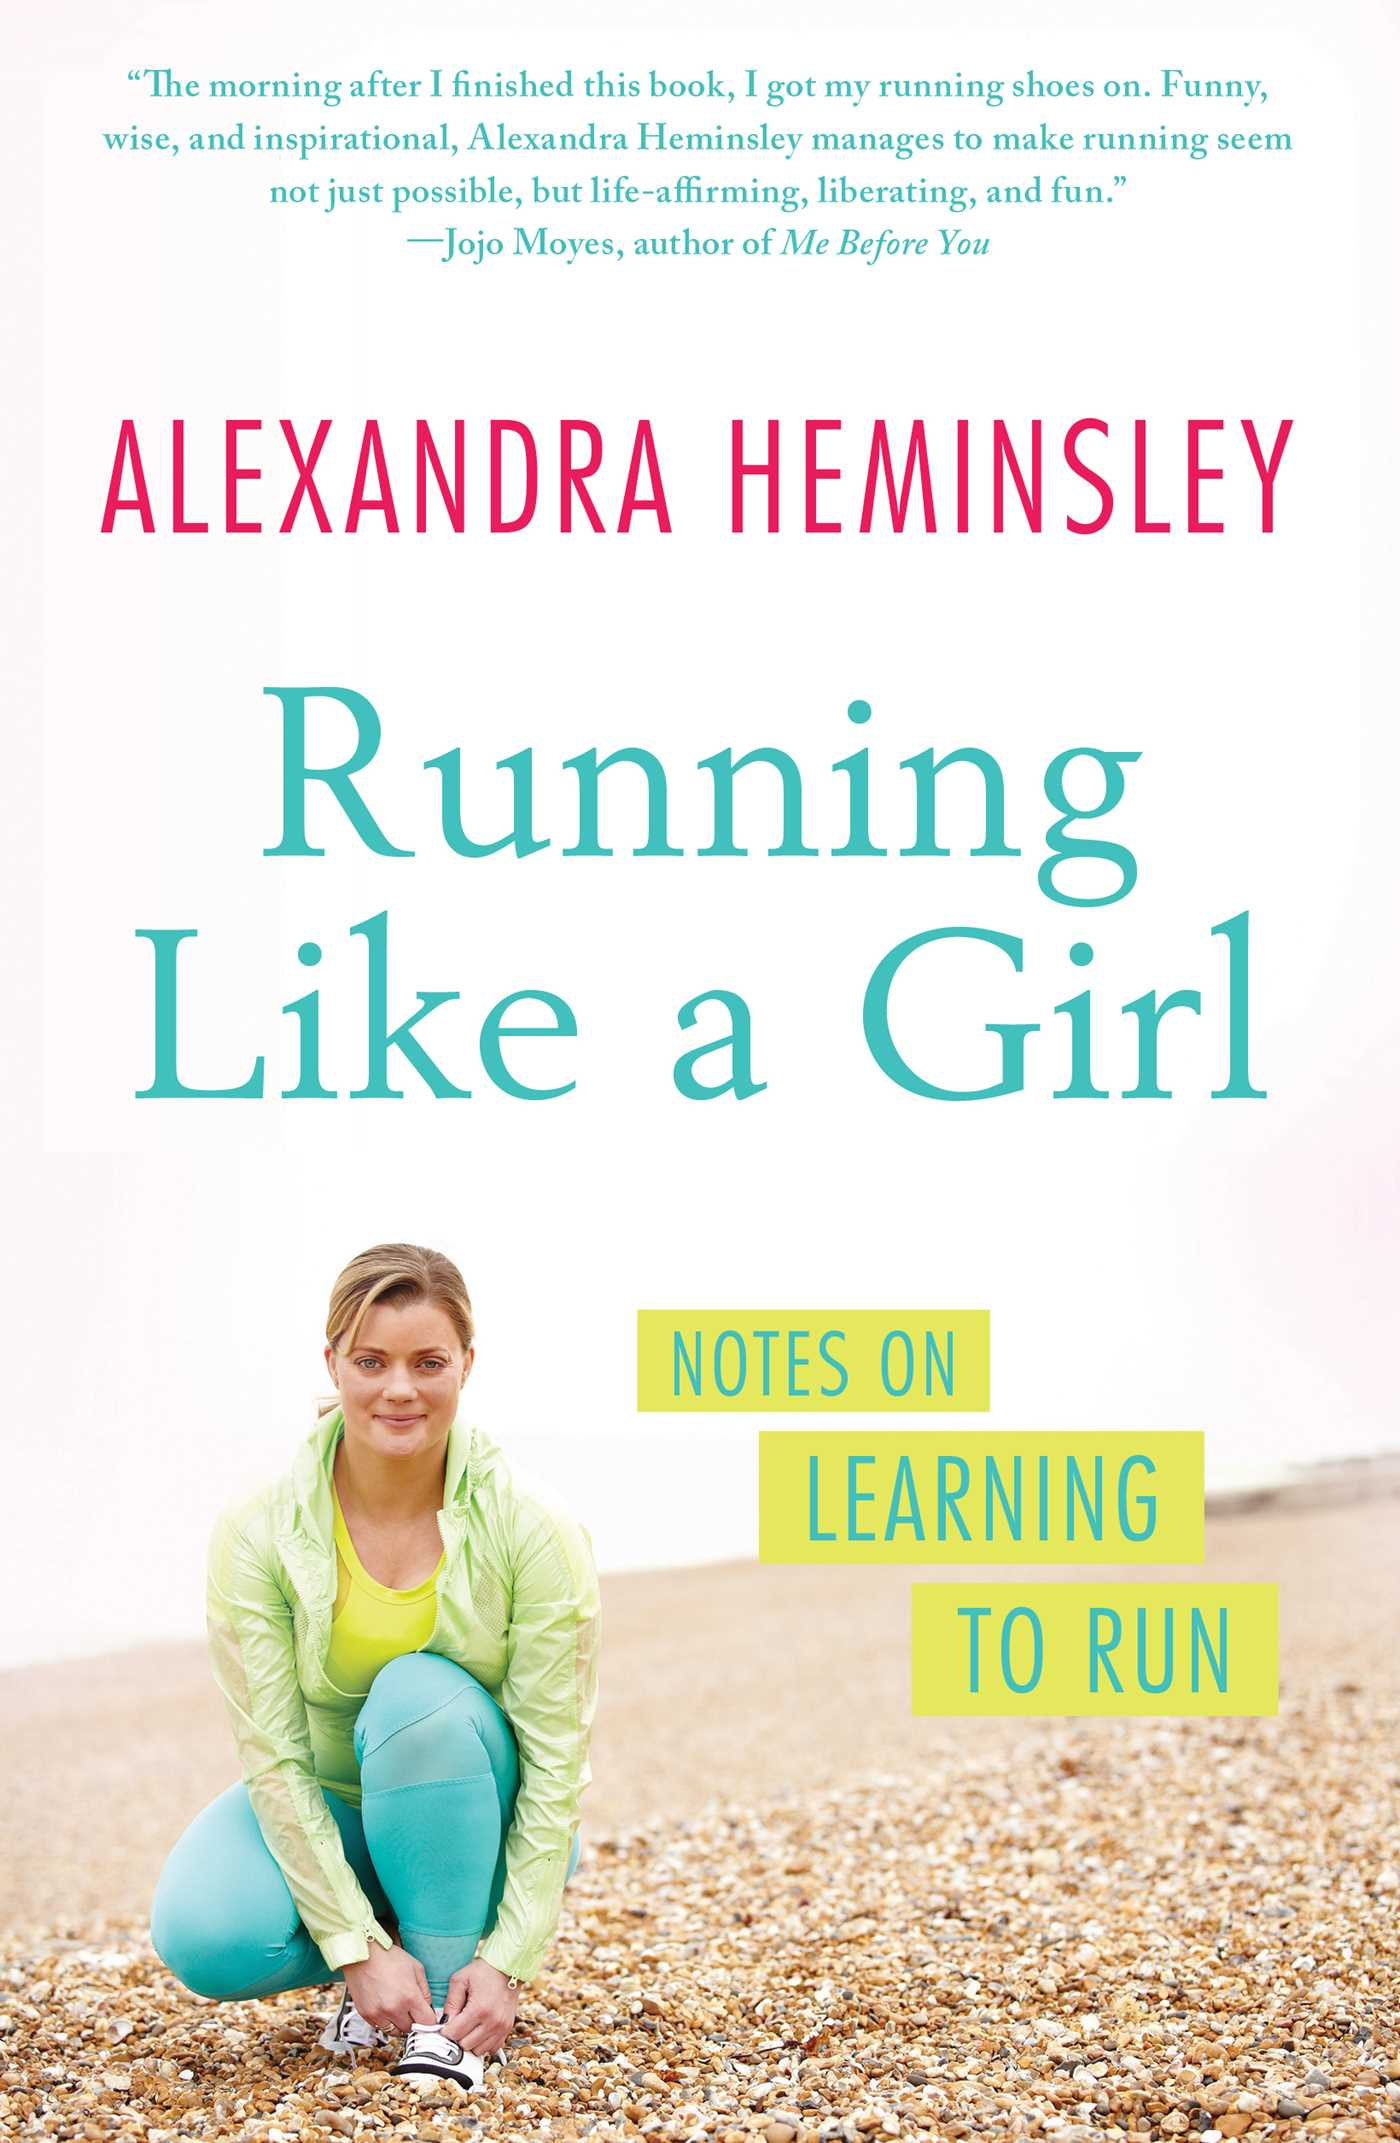 Running-like-a-girl-9781451697155_hr